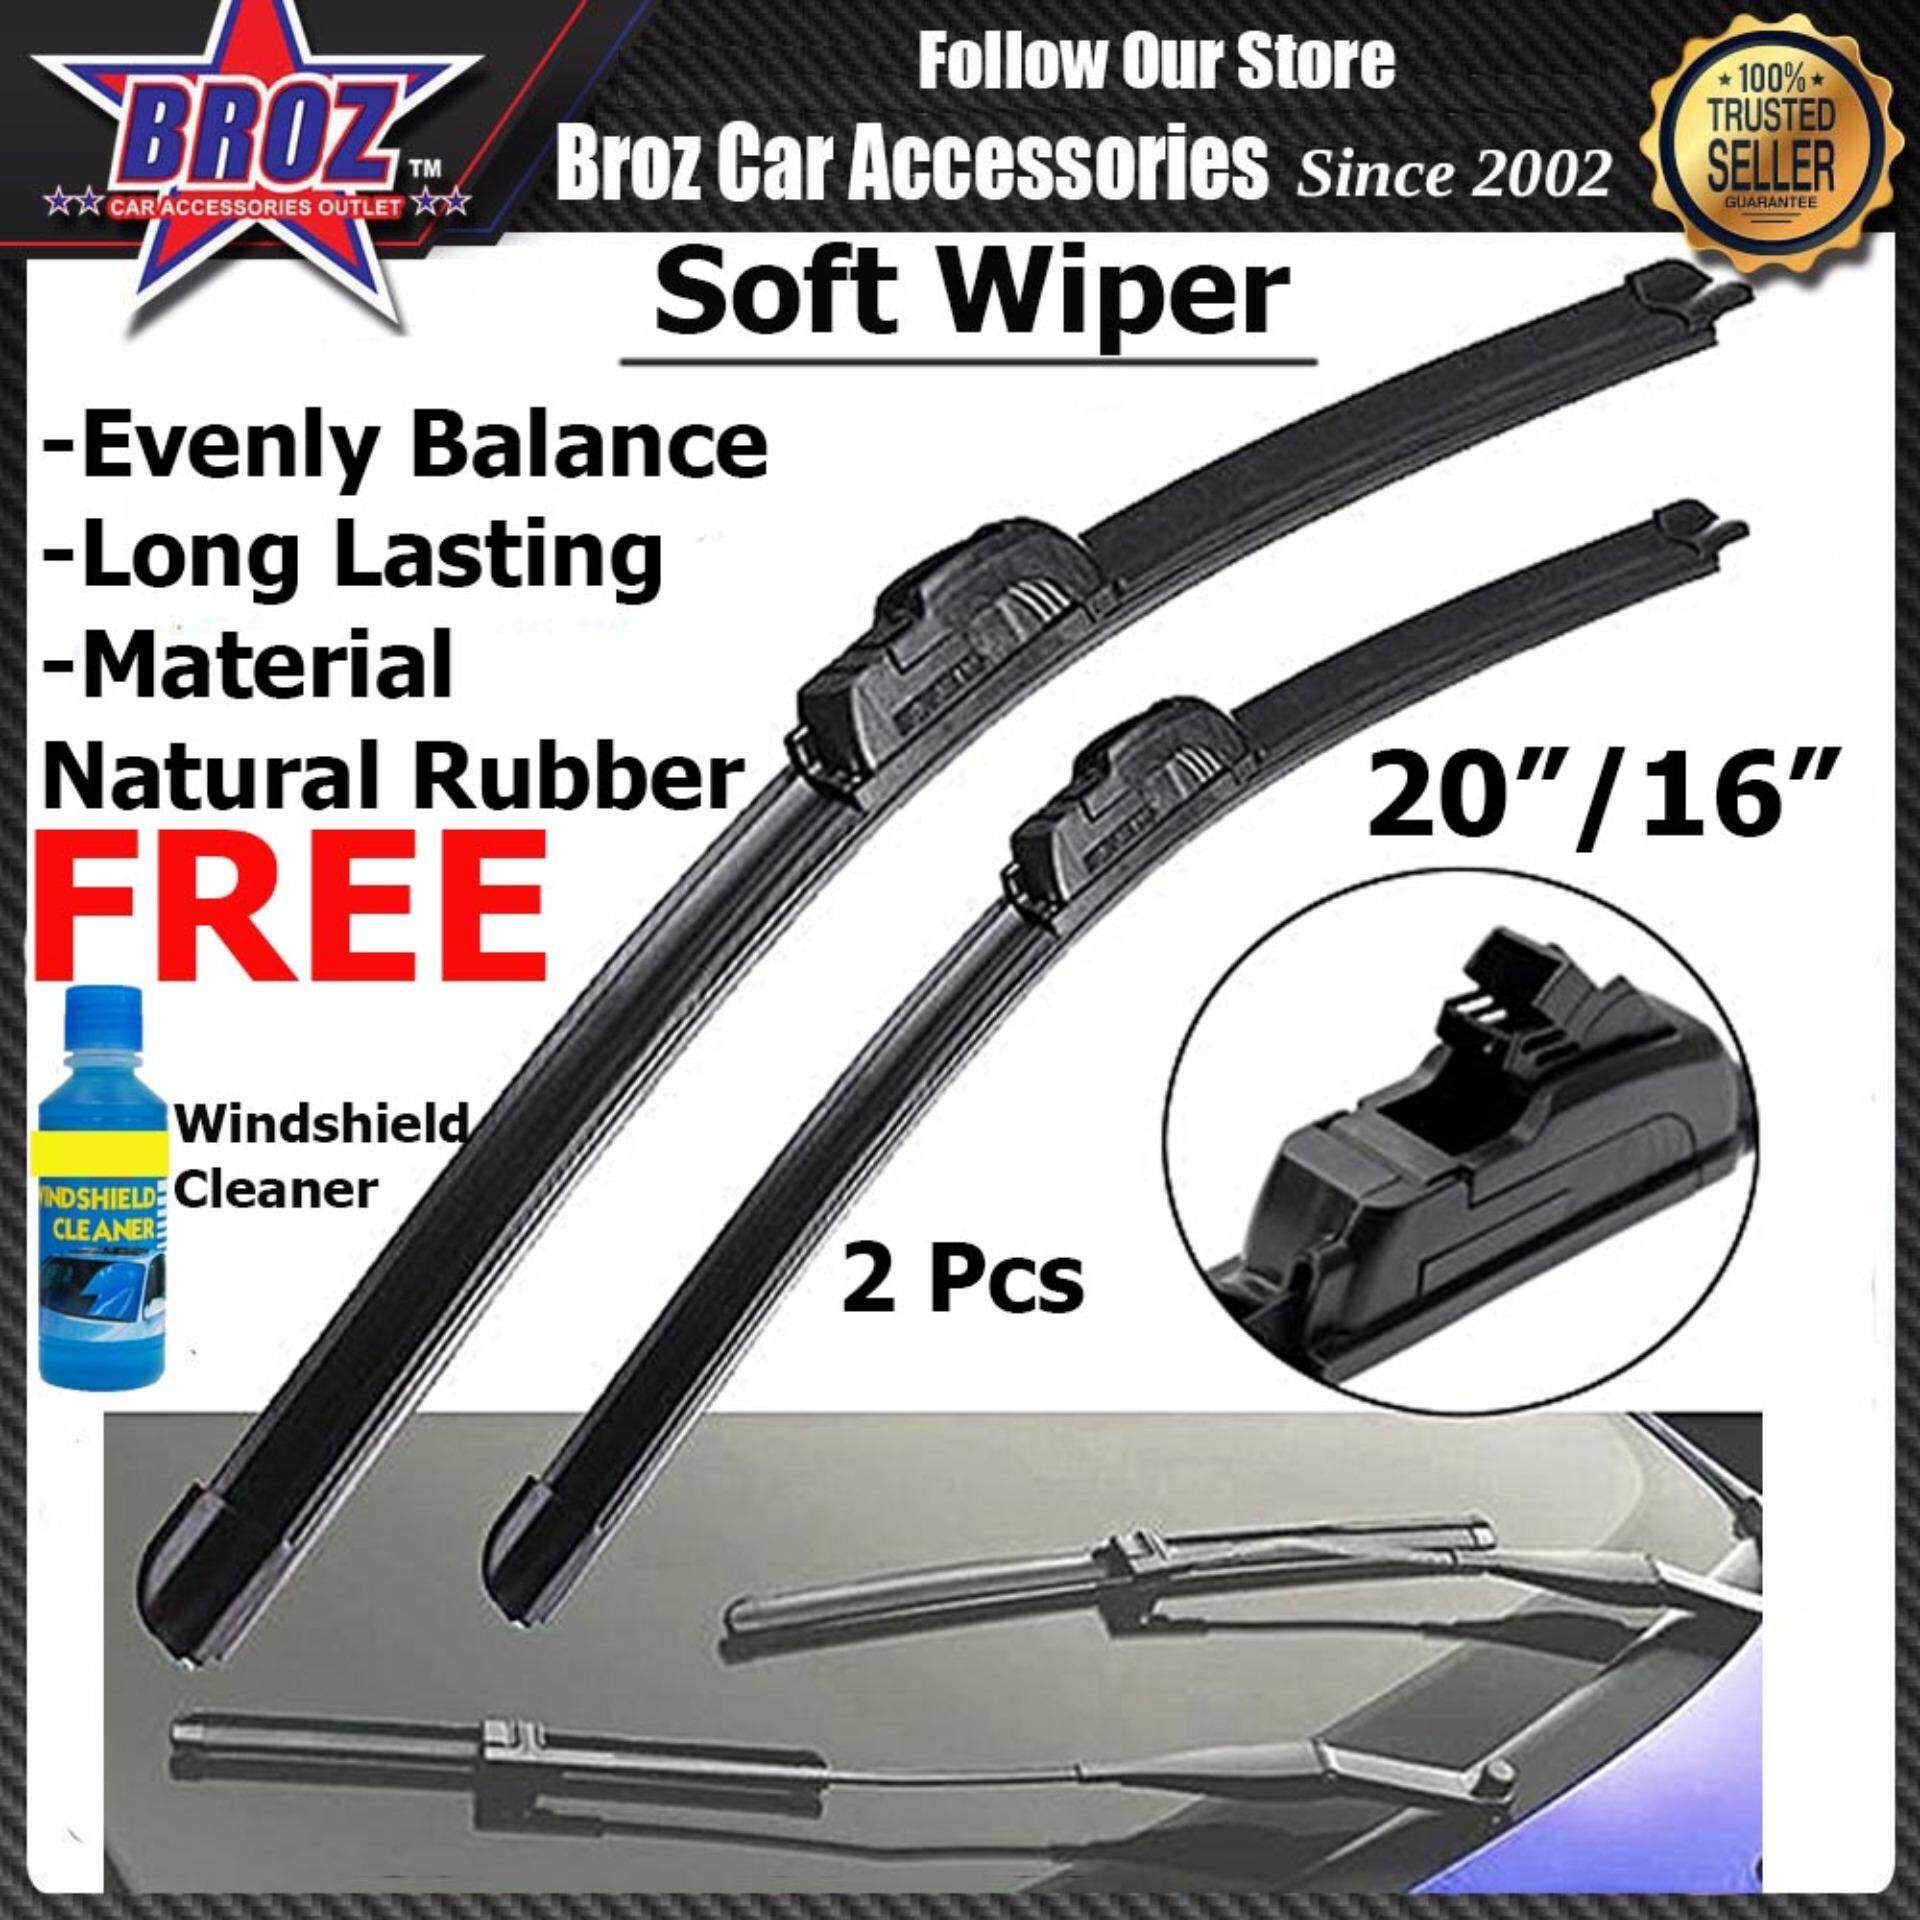 "Myvi Old 2006-2011 Avanza Old 2005-2011 First Generation Atos Car Soft Wiper Natural Rubber 20""/16"" (2pcs)"